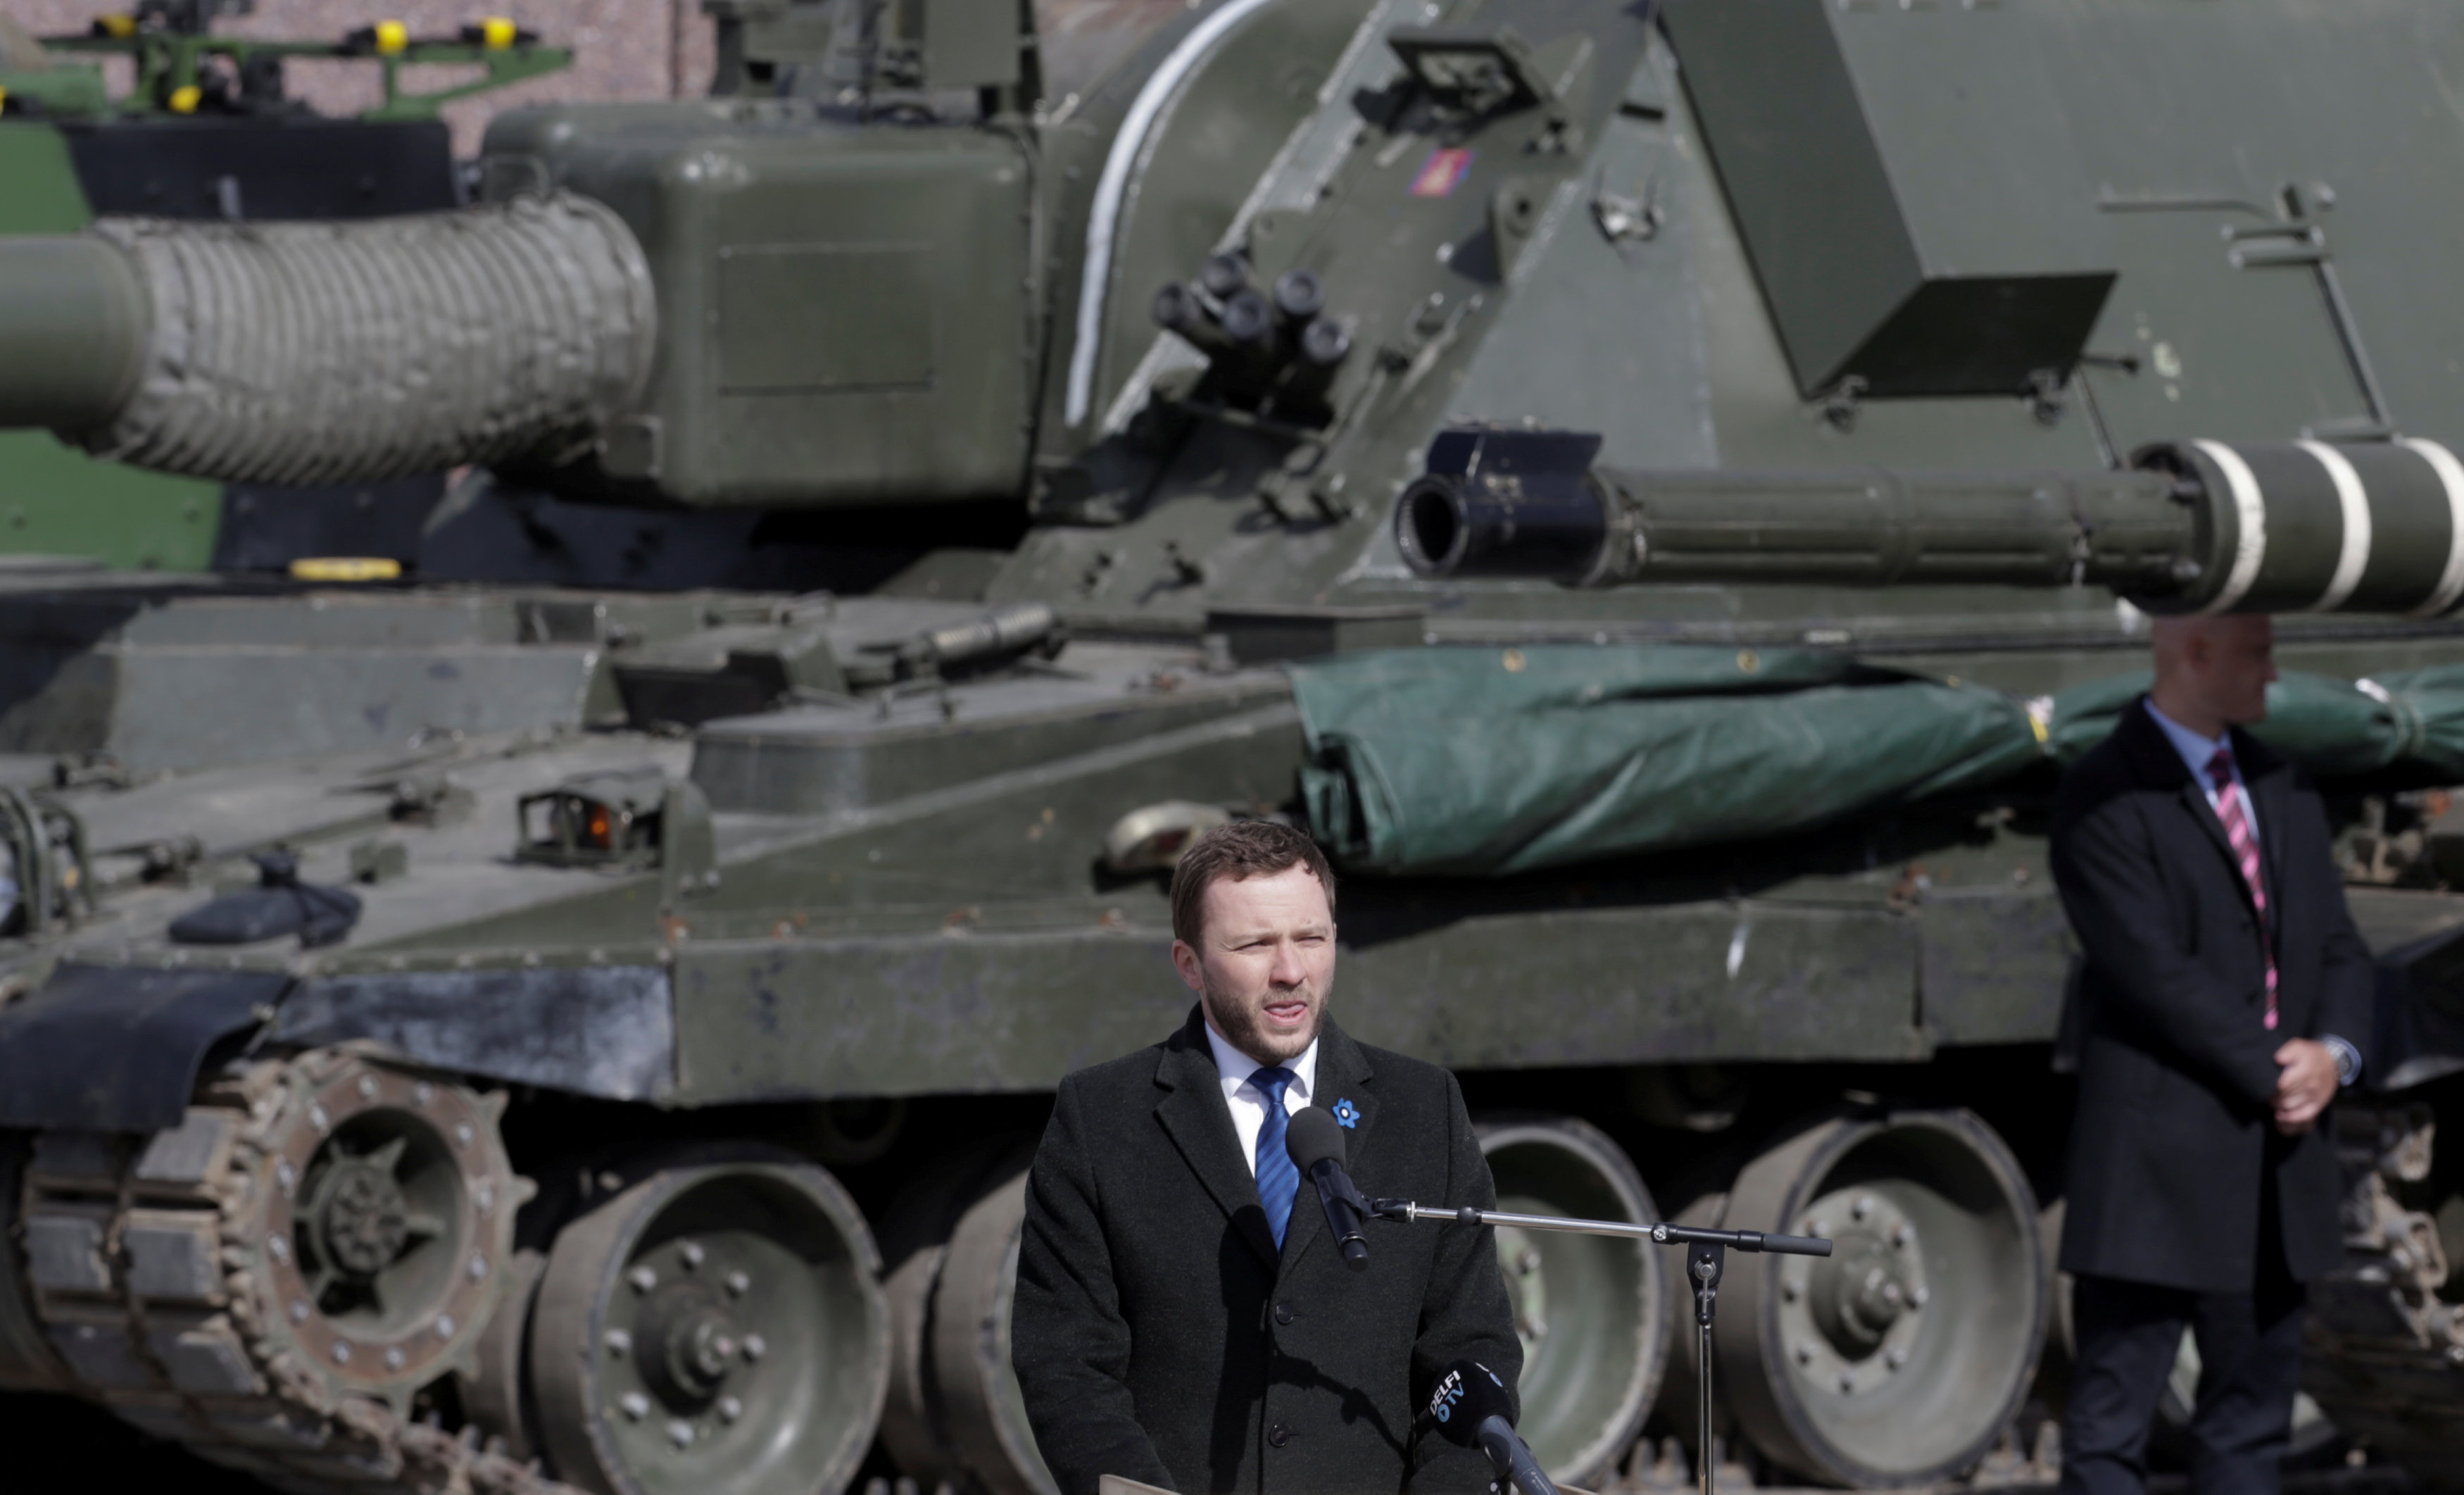 FILE PHOTO: Estonia's Defence Minister Margus Tsahkna speaks during the official ceremony welcoming the deployment of a multi-national NATO battalion in Tapa, Estonia, April 20, 2017. REUTERS/Ints Kalnins/File Photo